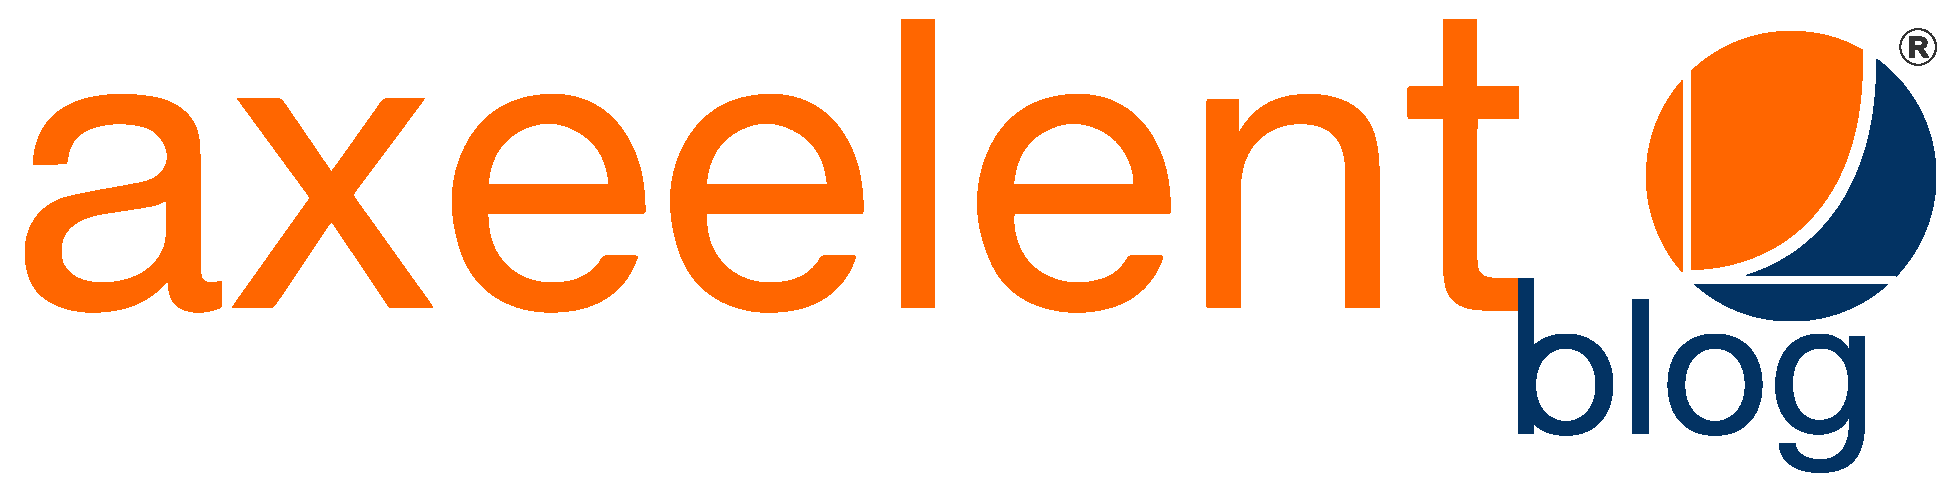 Axeelent s.r.l.